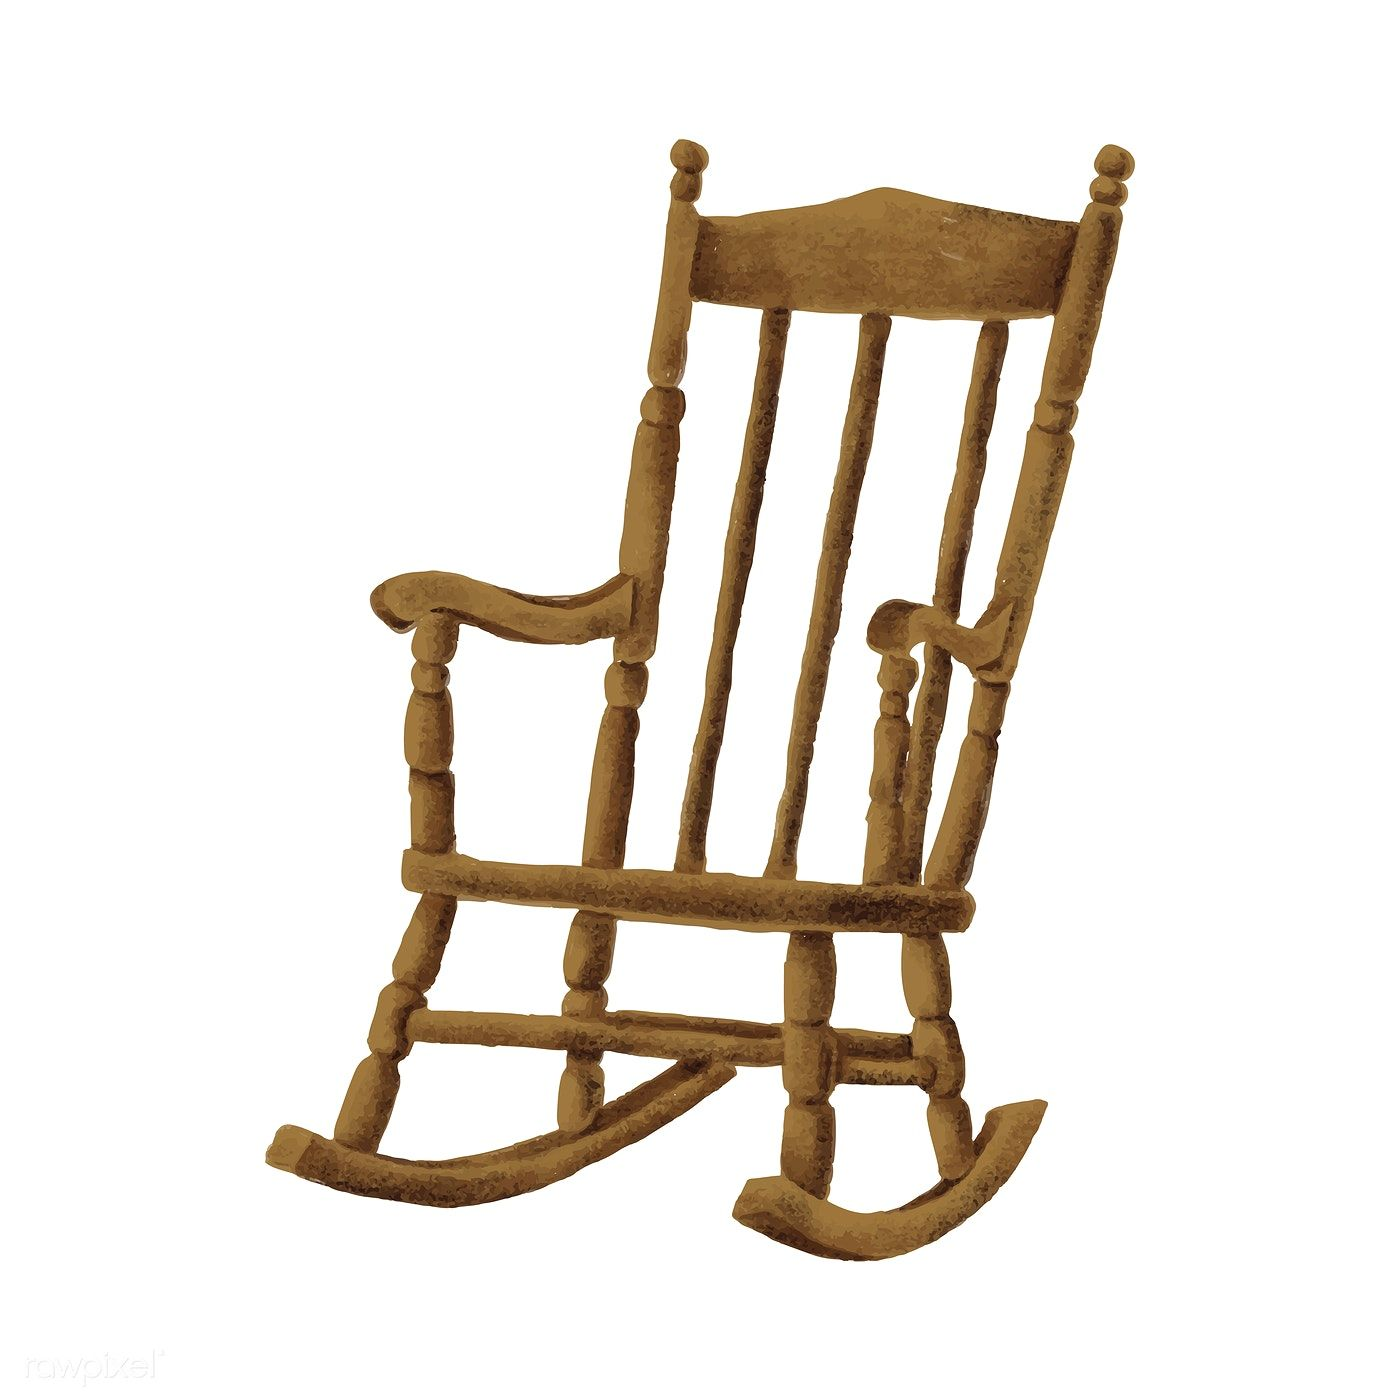 Hand Drawn Wooden Rocking Chair Free Image By Rawpixel Com Wooden Rocking Chairs Rocking Chair Chair